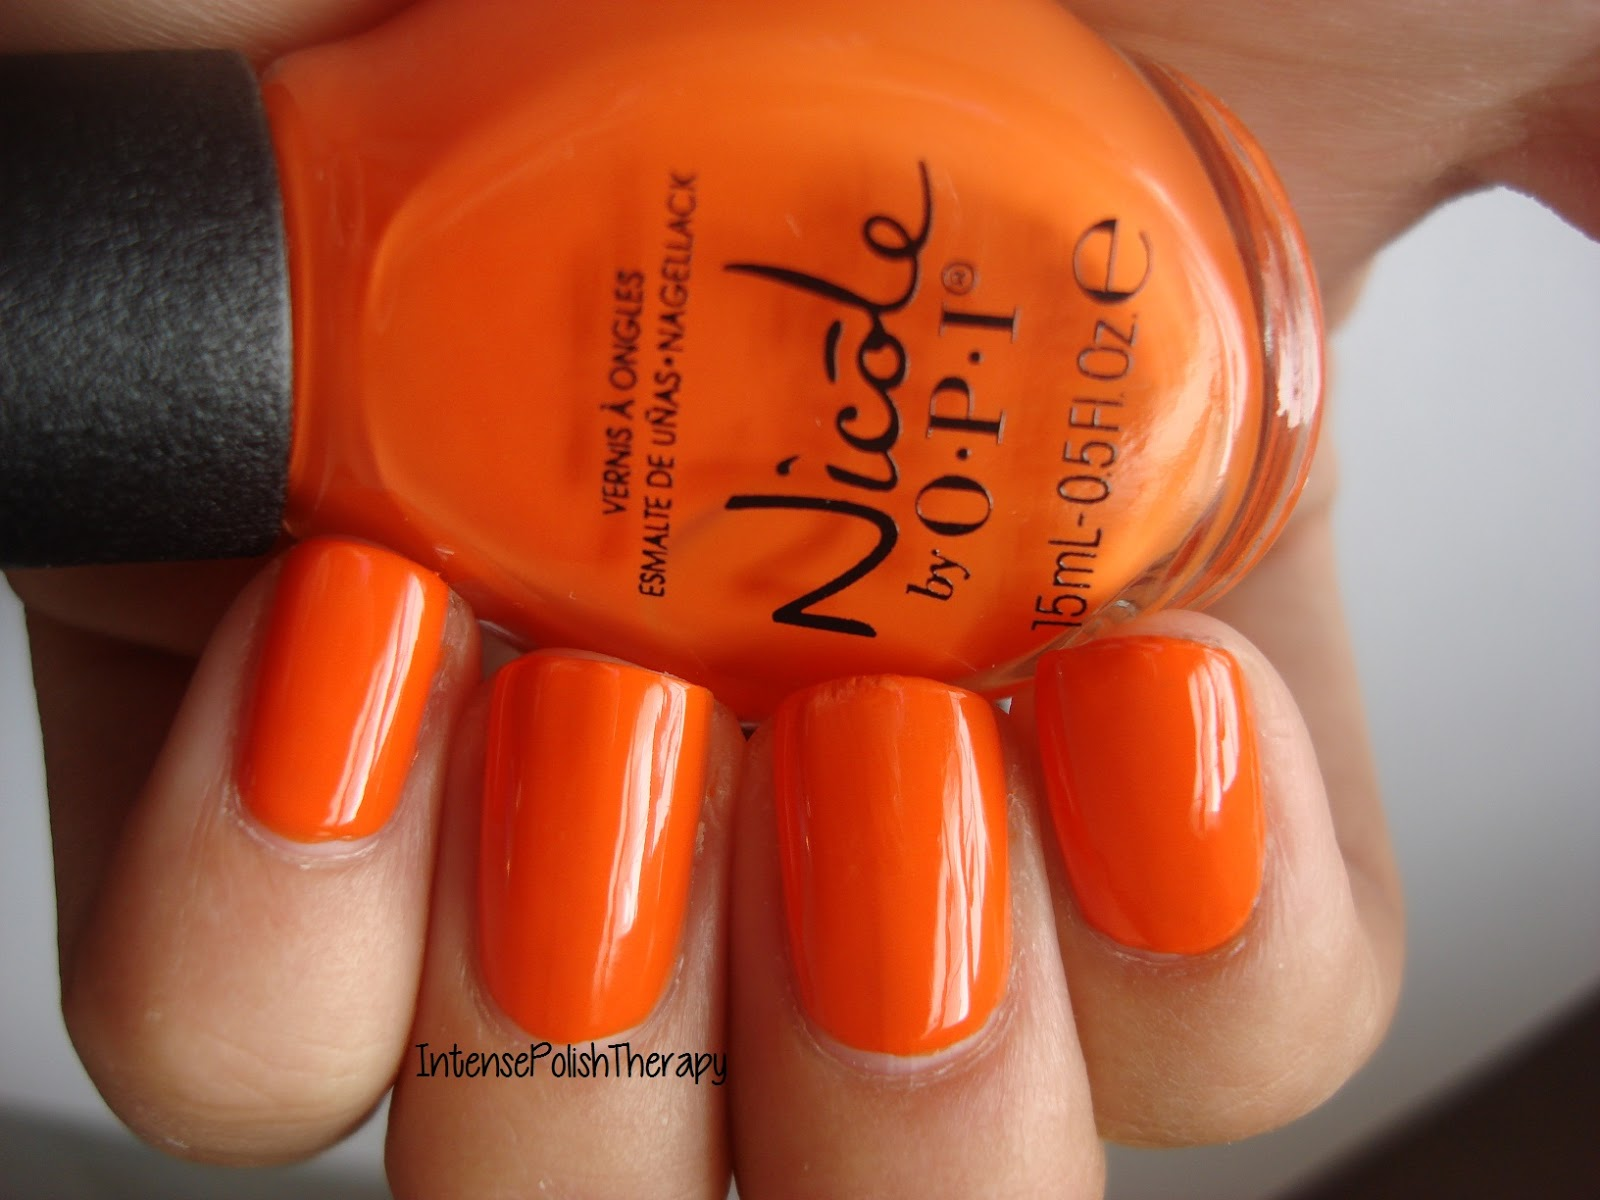 Nicole by OPI - The Look is Orange